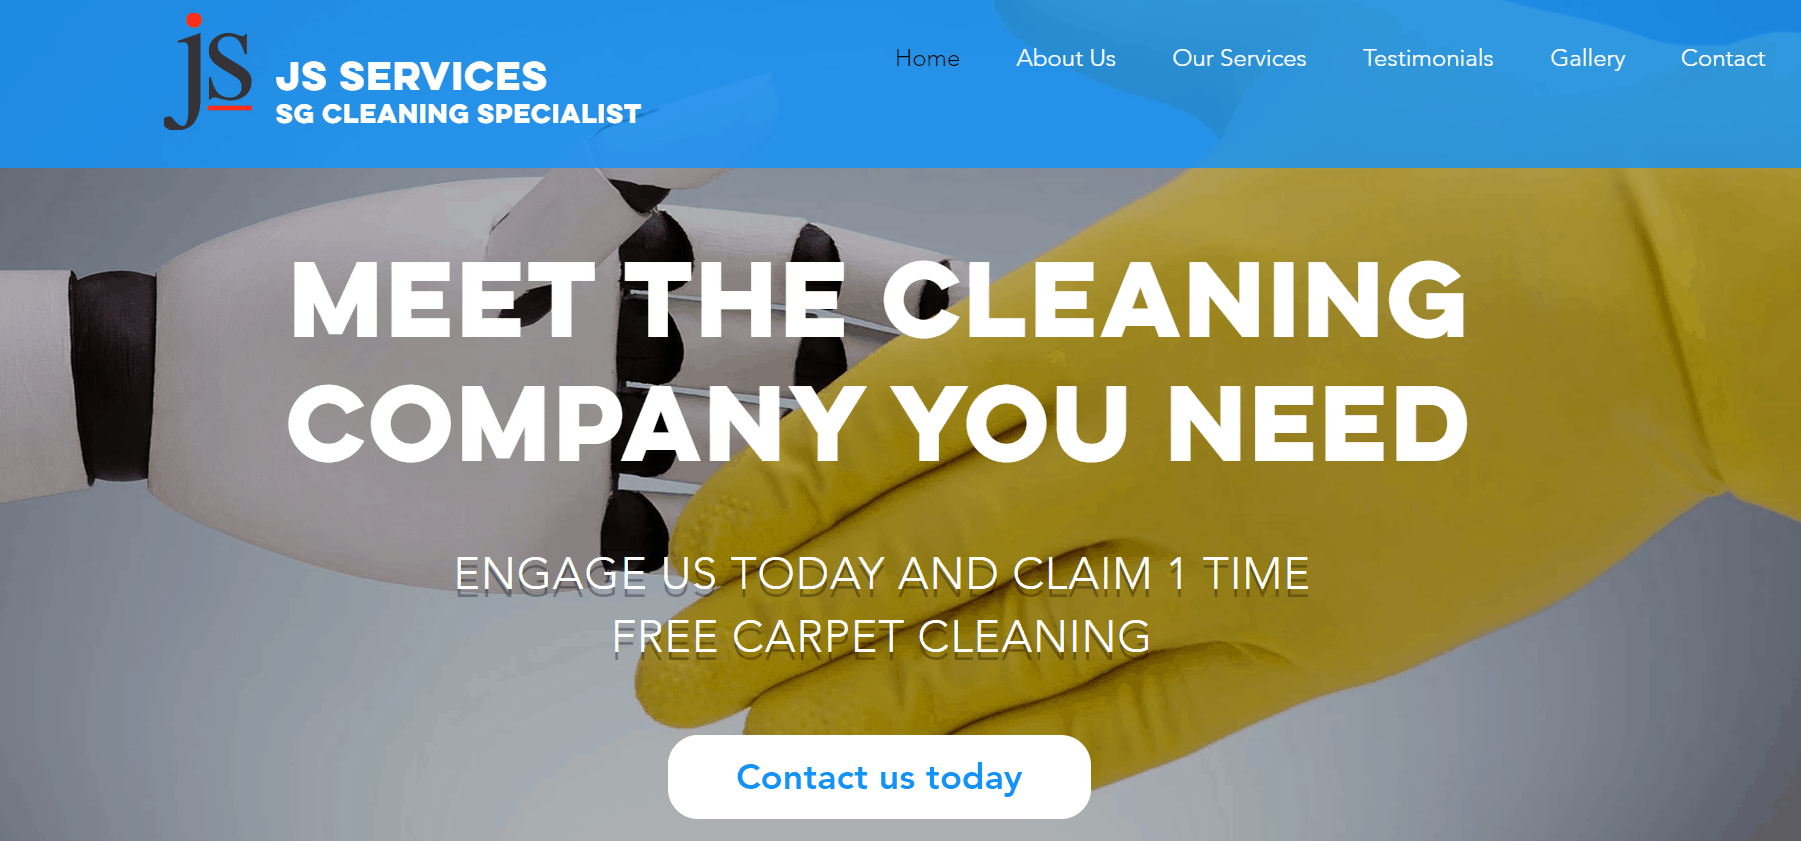 J.S Services LLP is the Best Local Office Cleaners - Top Cleaning From $18/hr, cleaning work areas, common areas, cubicles, restrooms, kitchens, and reception areas.